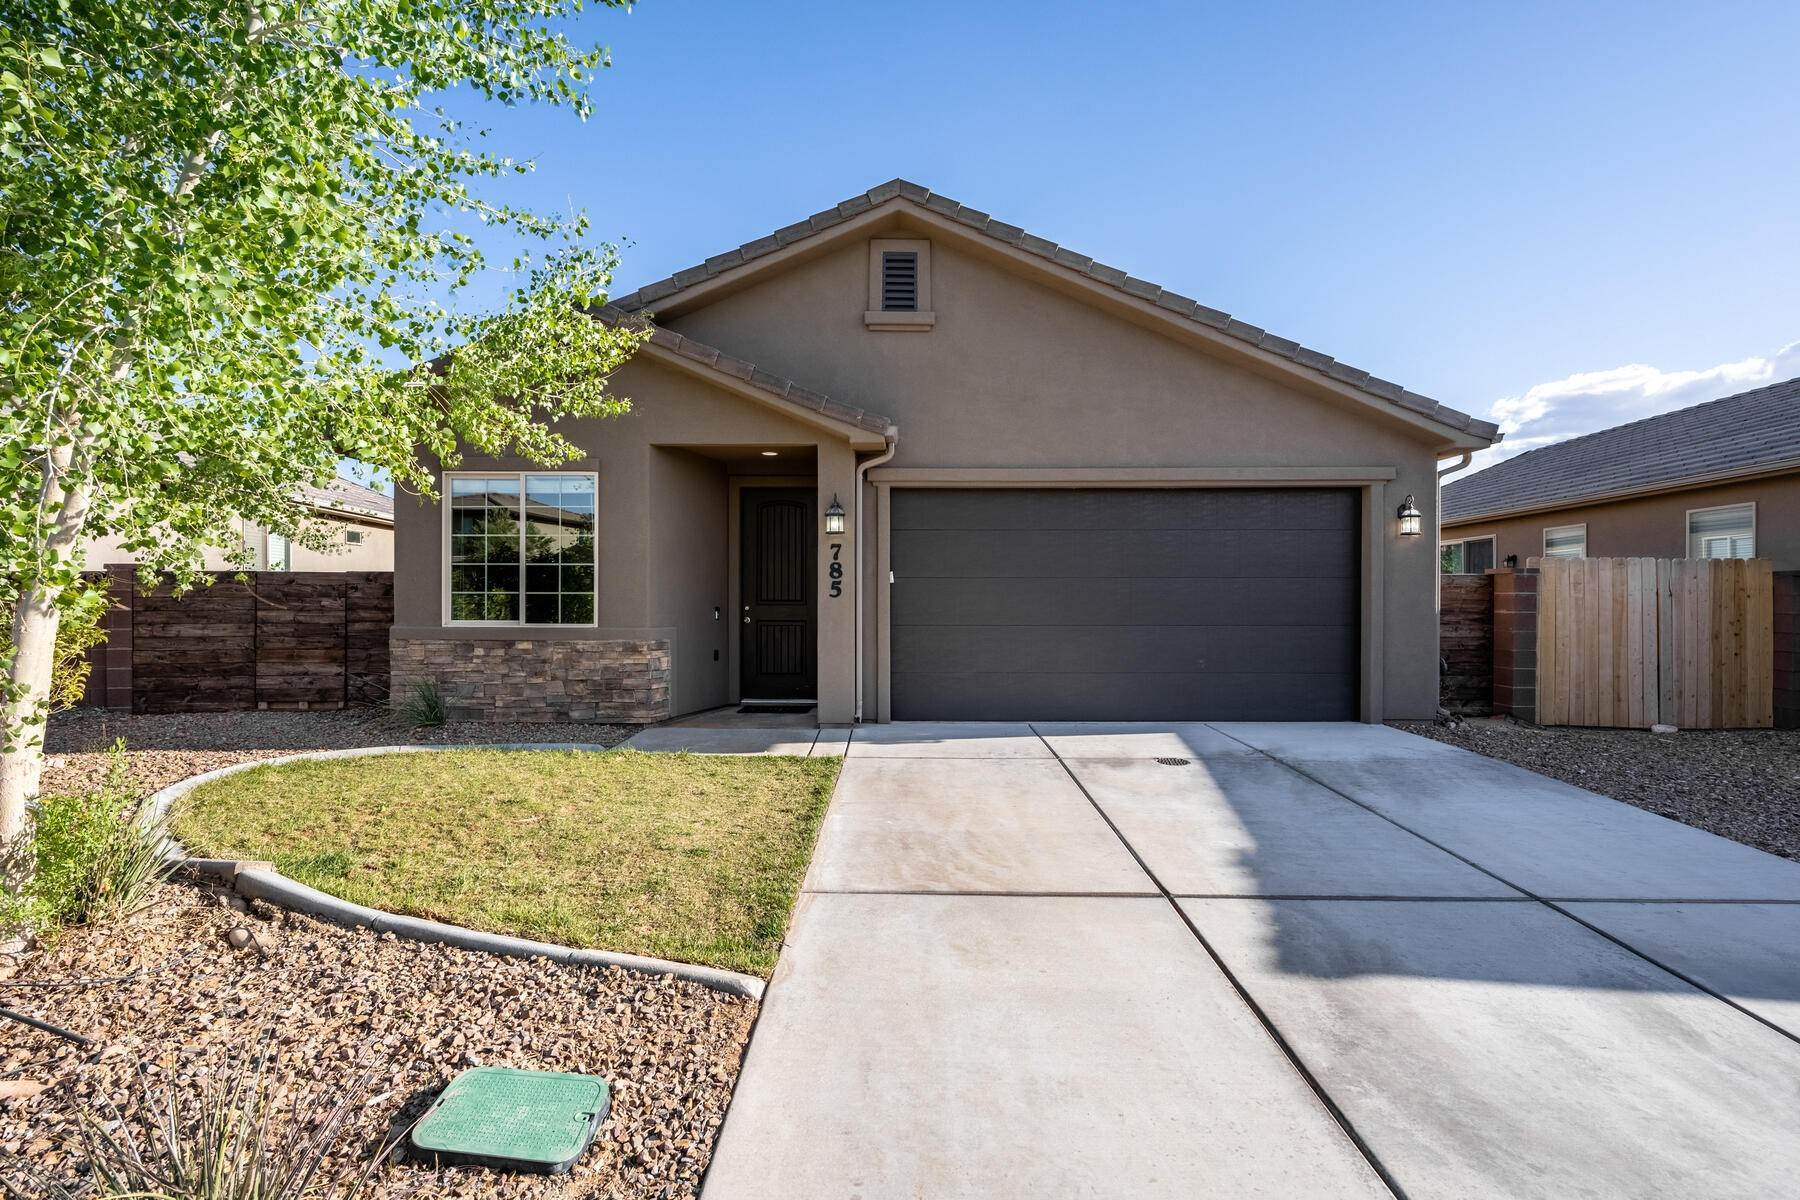 Single Family Homes for Sale at Just Right In So Many Ways 785 West 400 North Hurricane, Utah 84737 United States